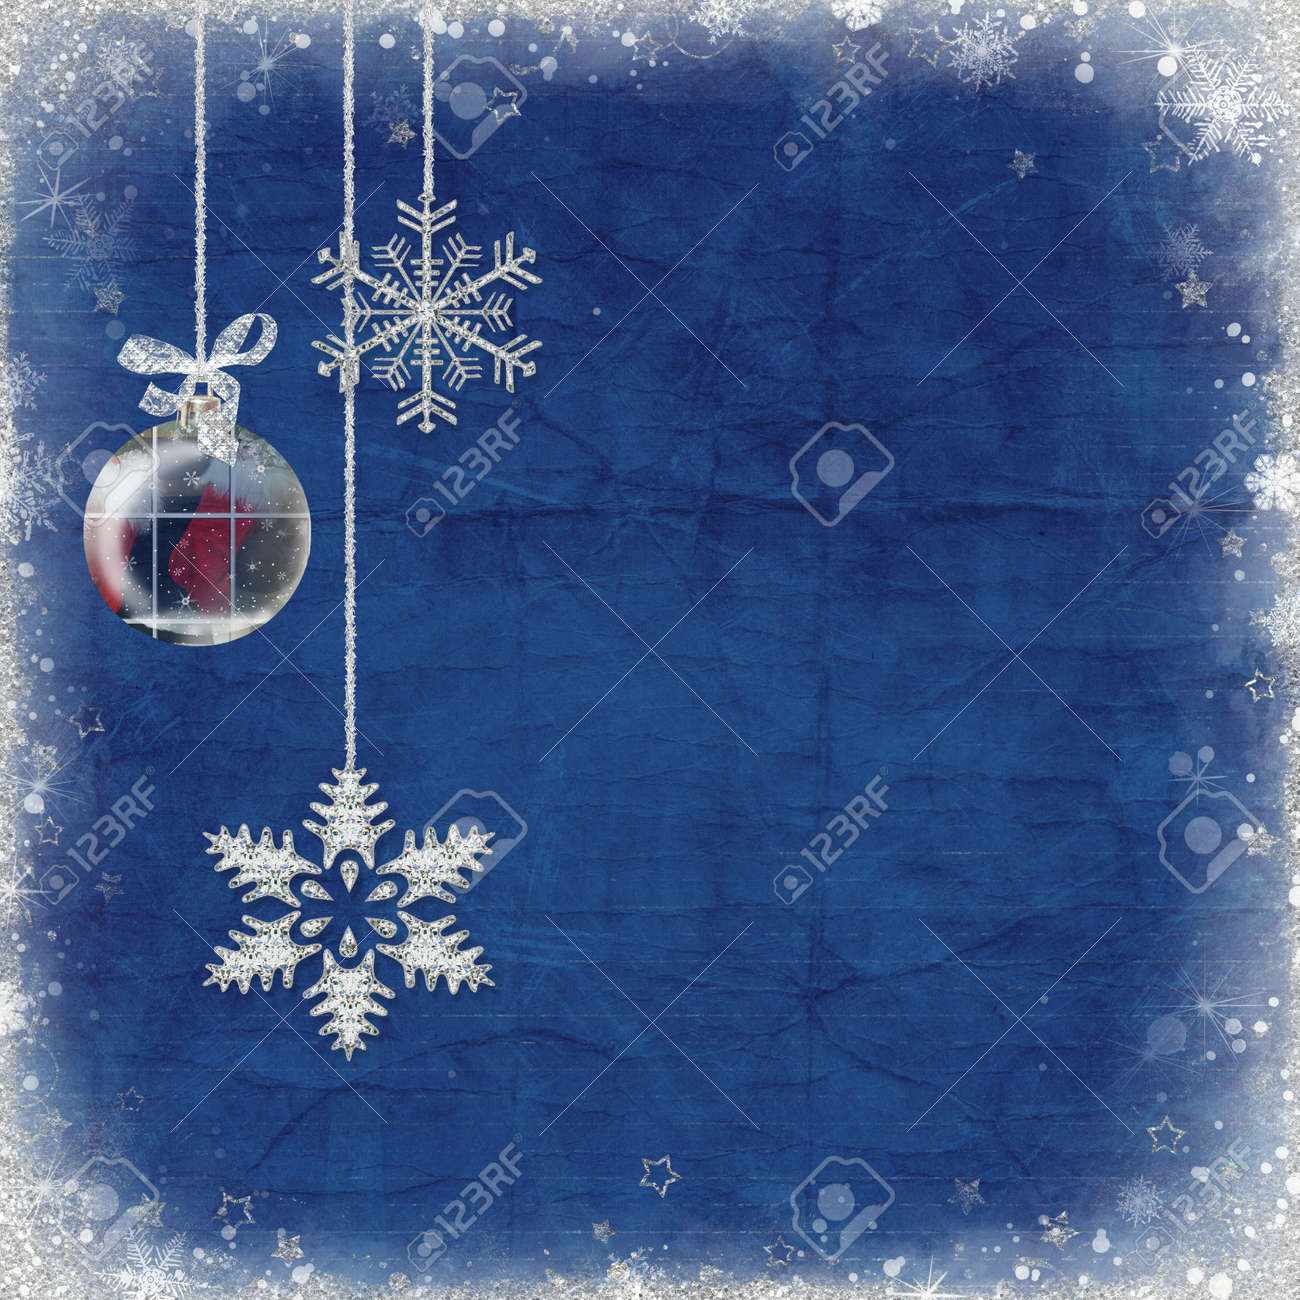 Snowflakes and ornament hanging from tinsel. Stock Photo - 11566098